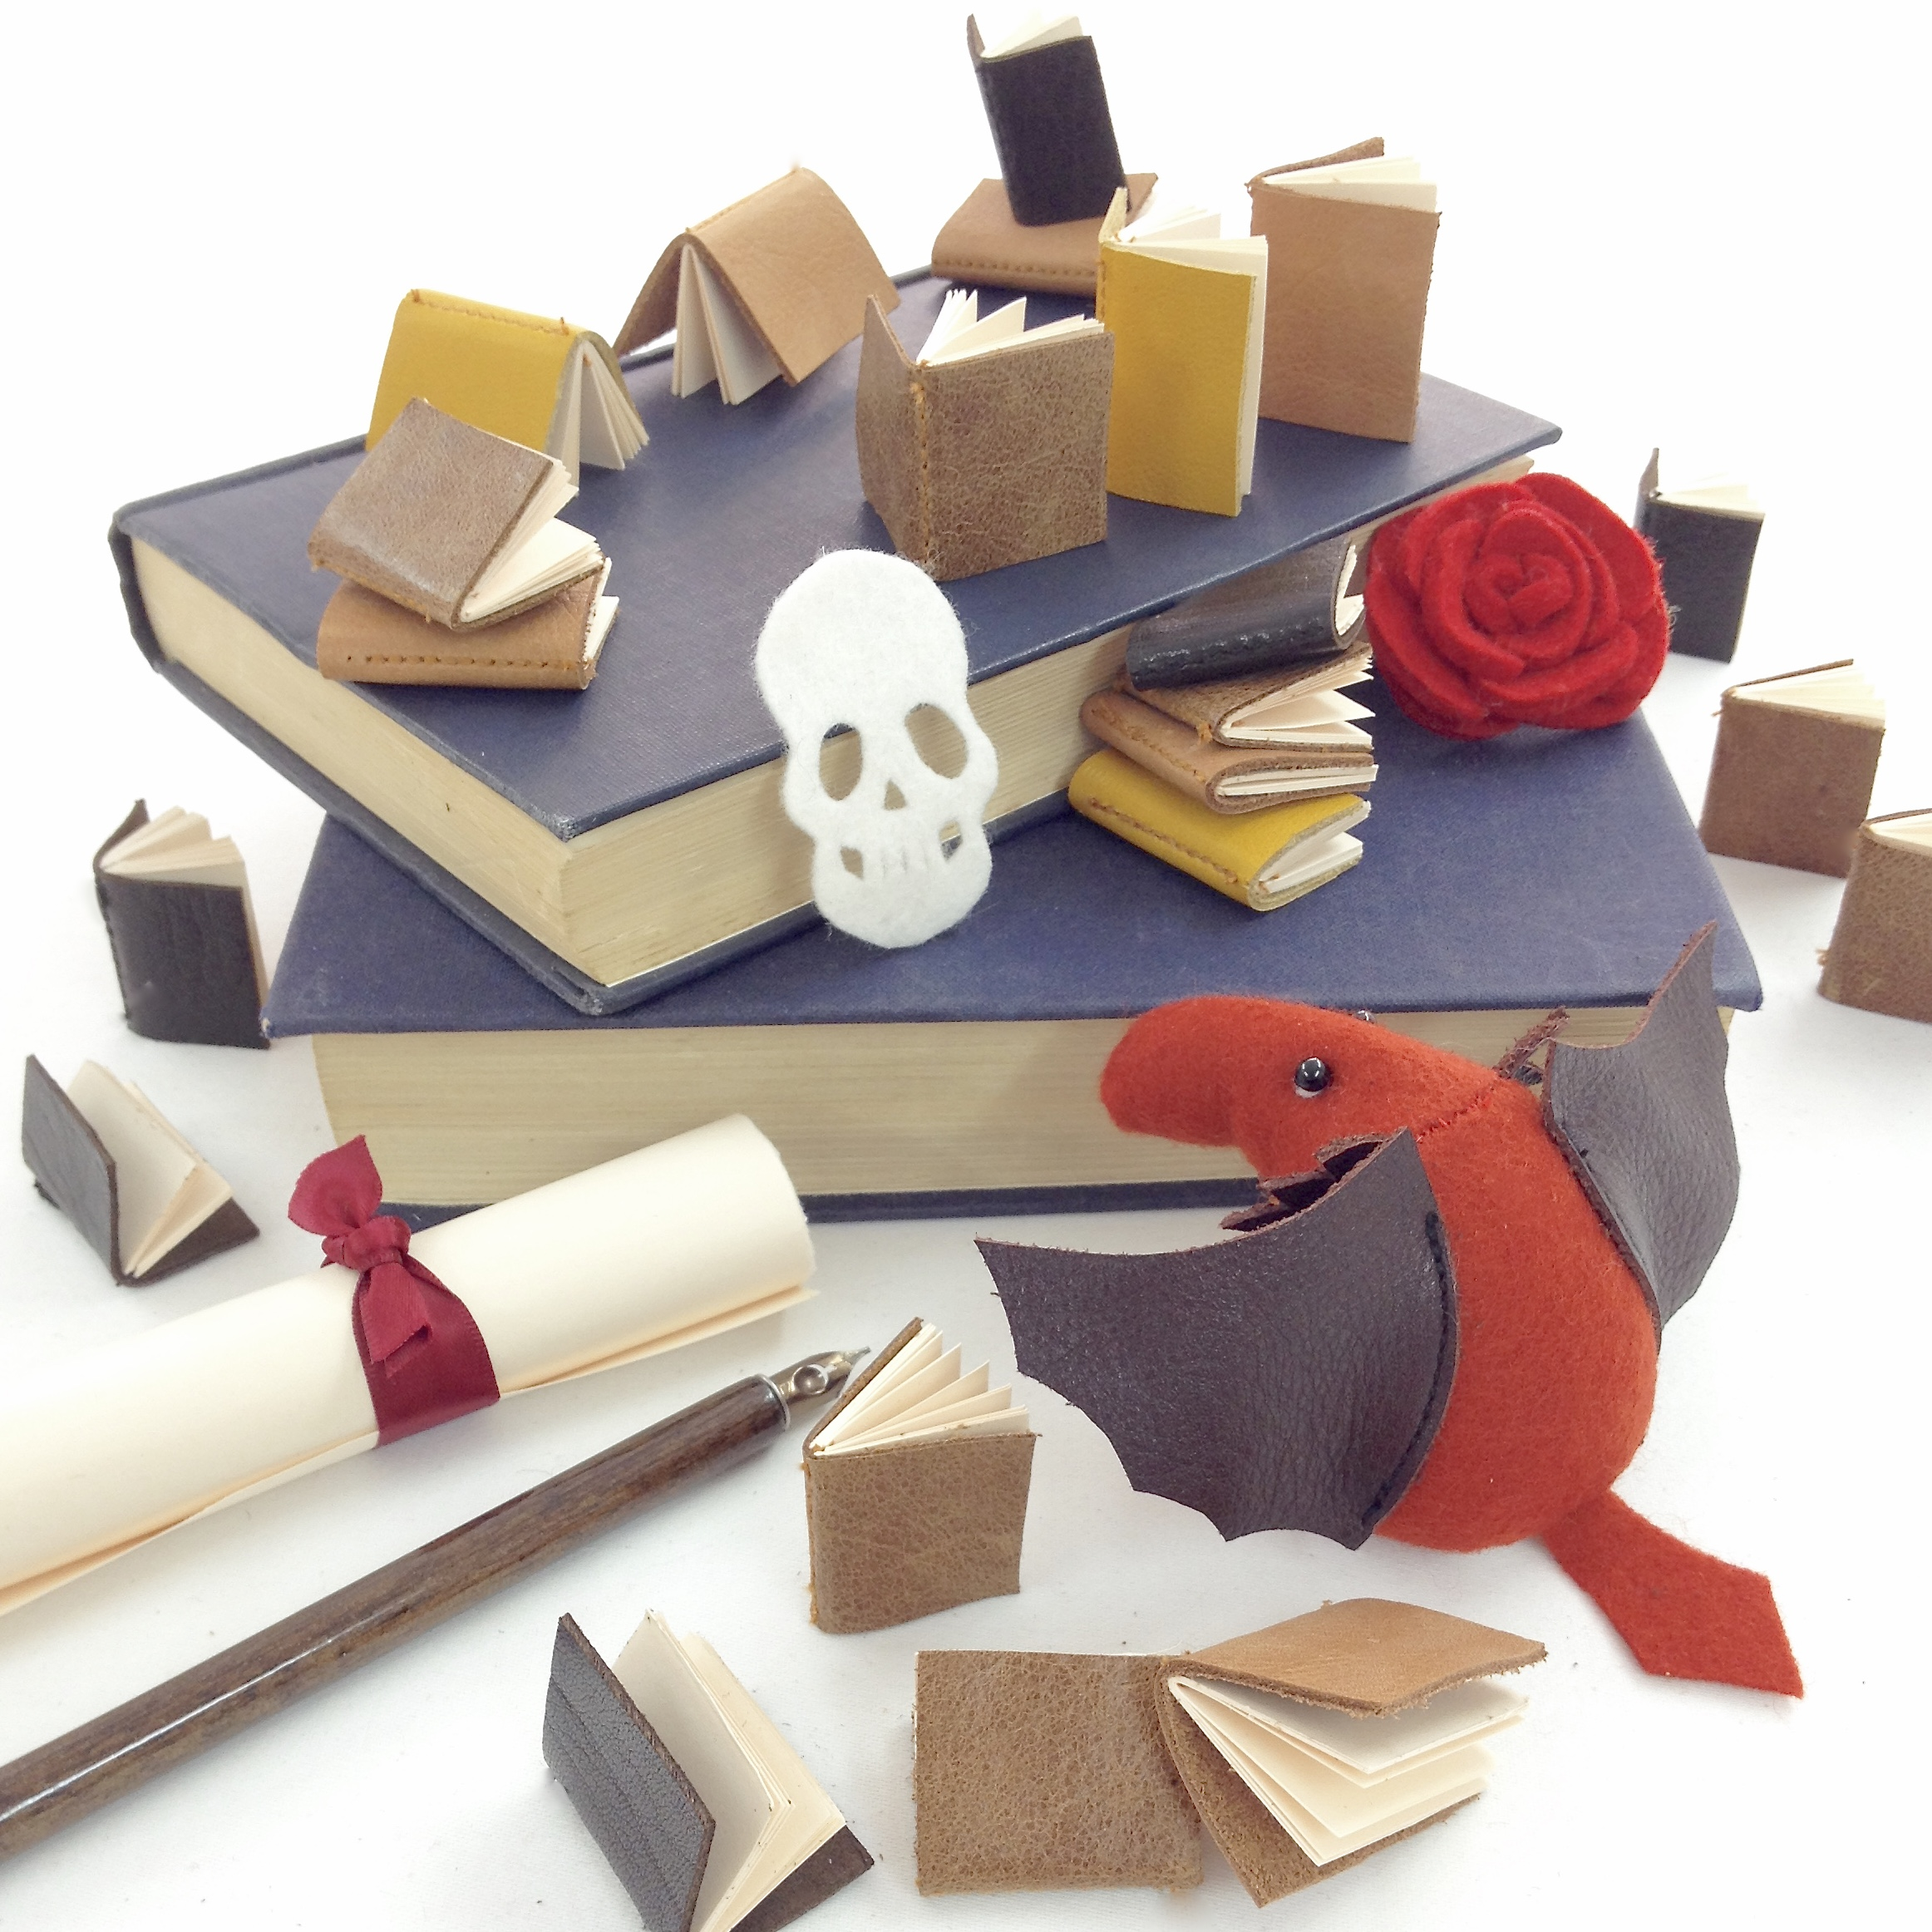 Bilberry Woods character David the Dragon and miniature books by Laura Mirjami | Mirjami Design